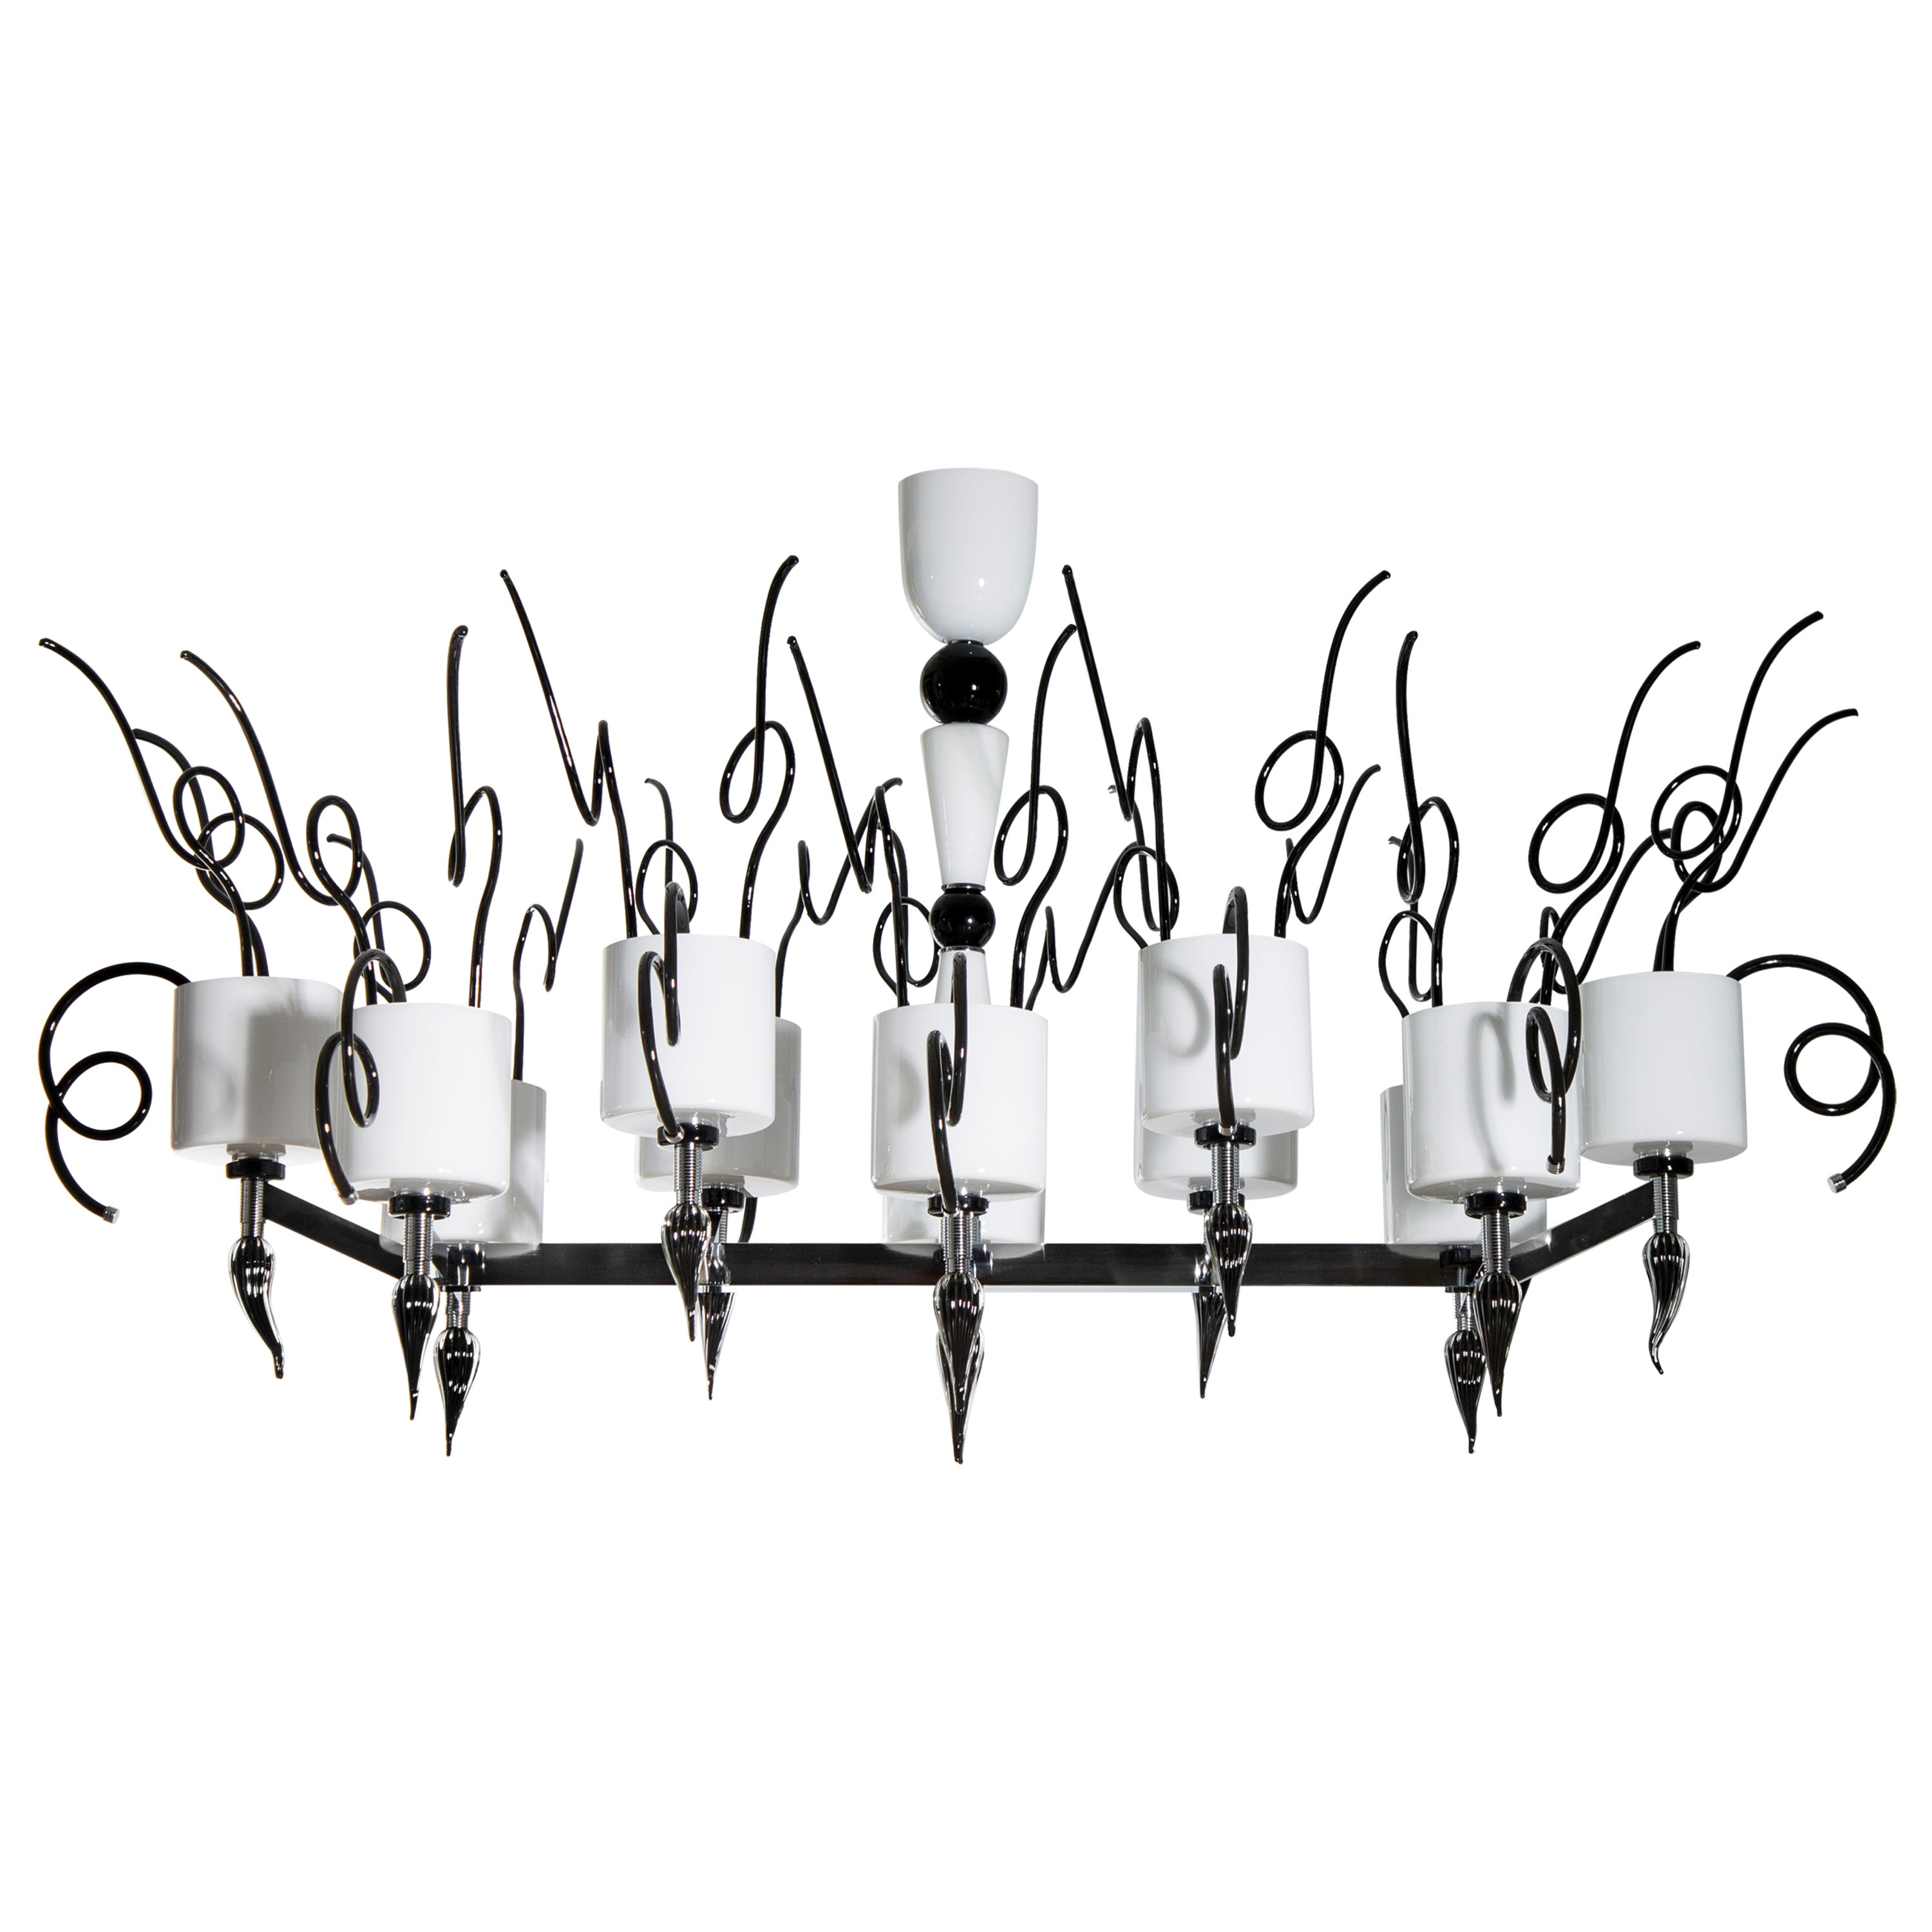 Curly Chandelier black and white in blown Murano Glass contemporary Italy